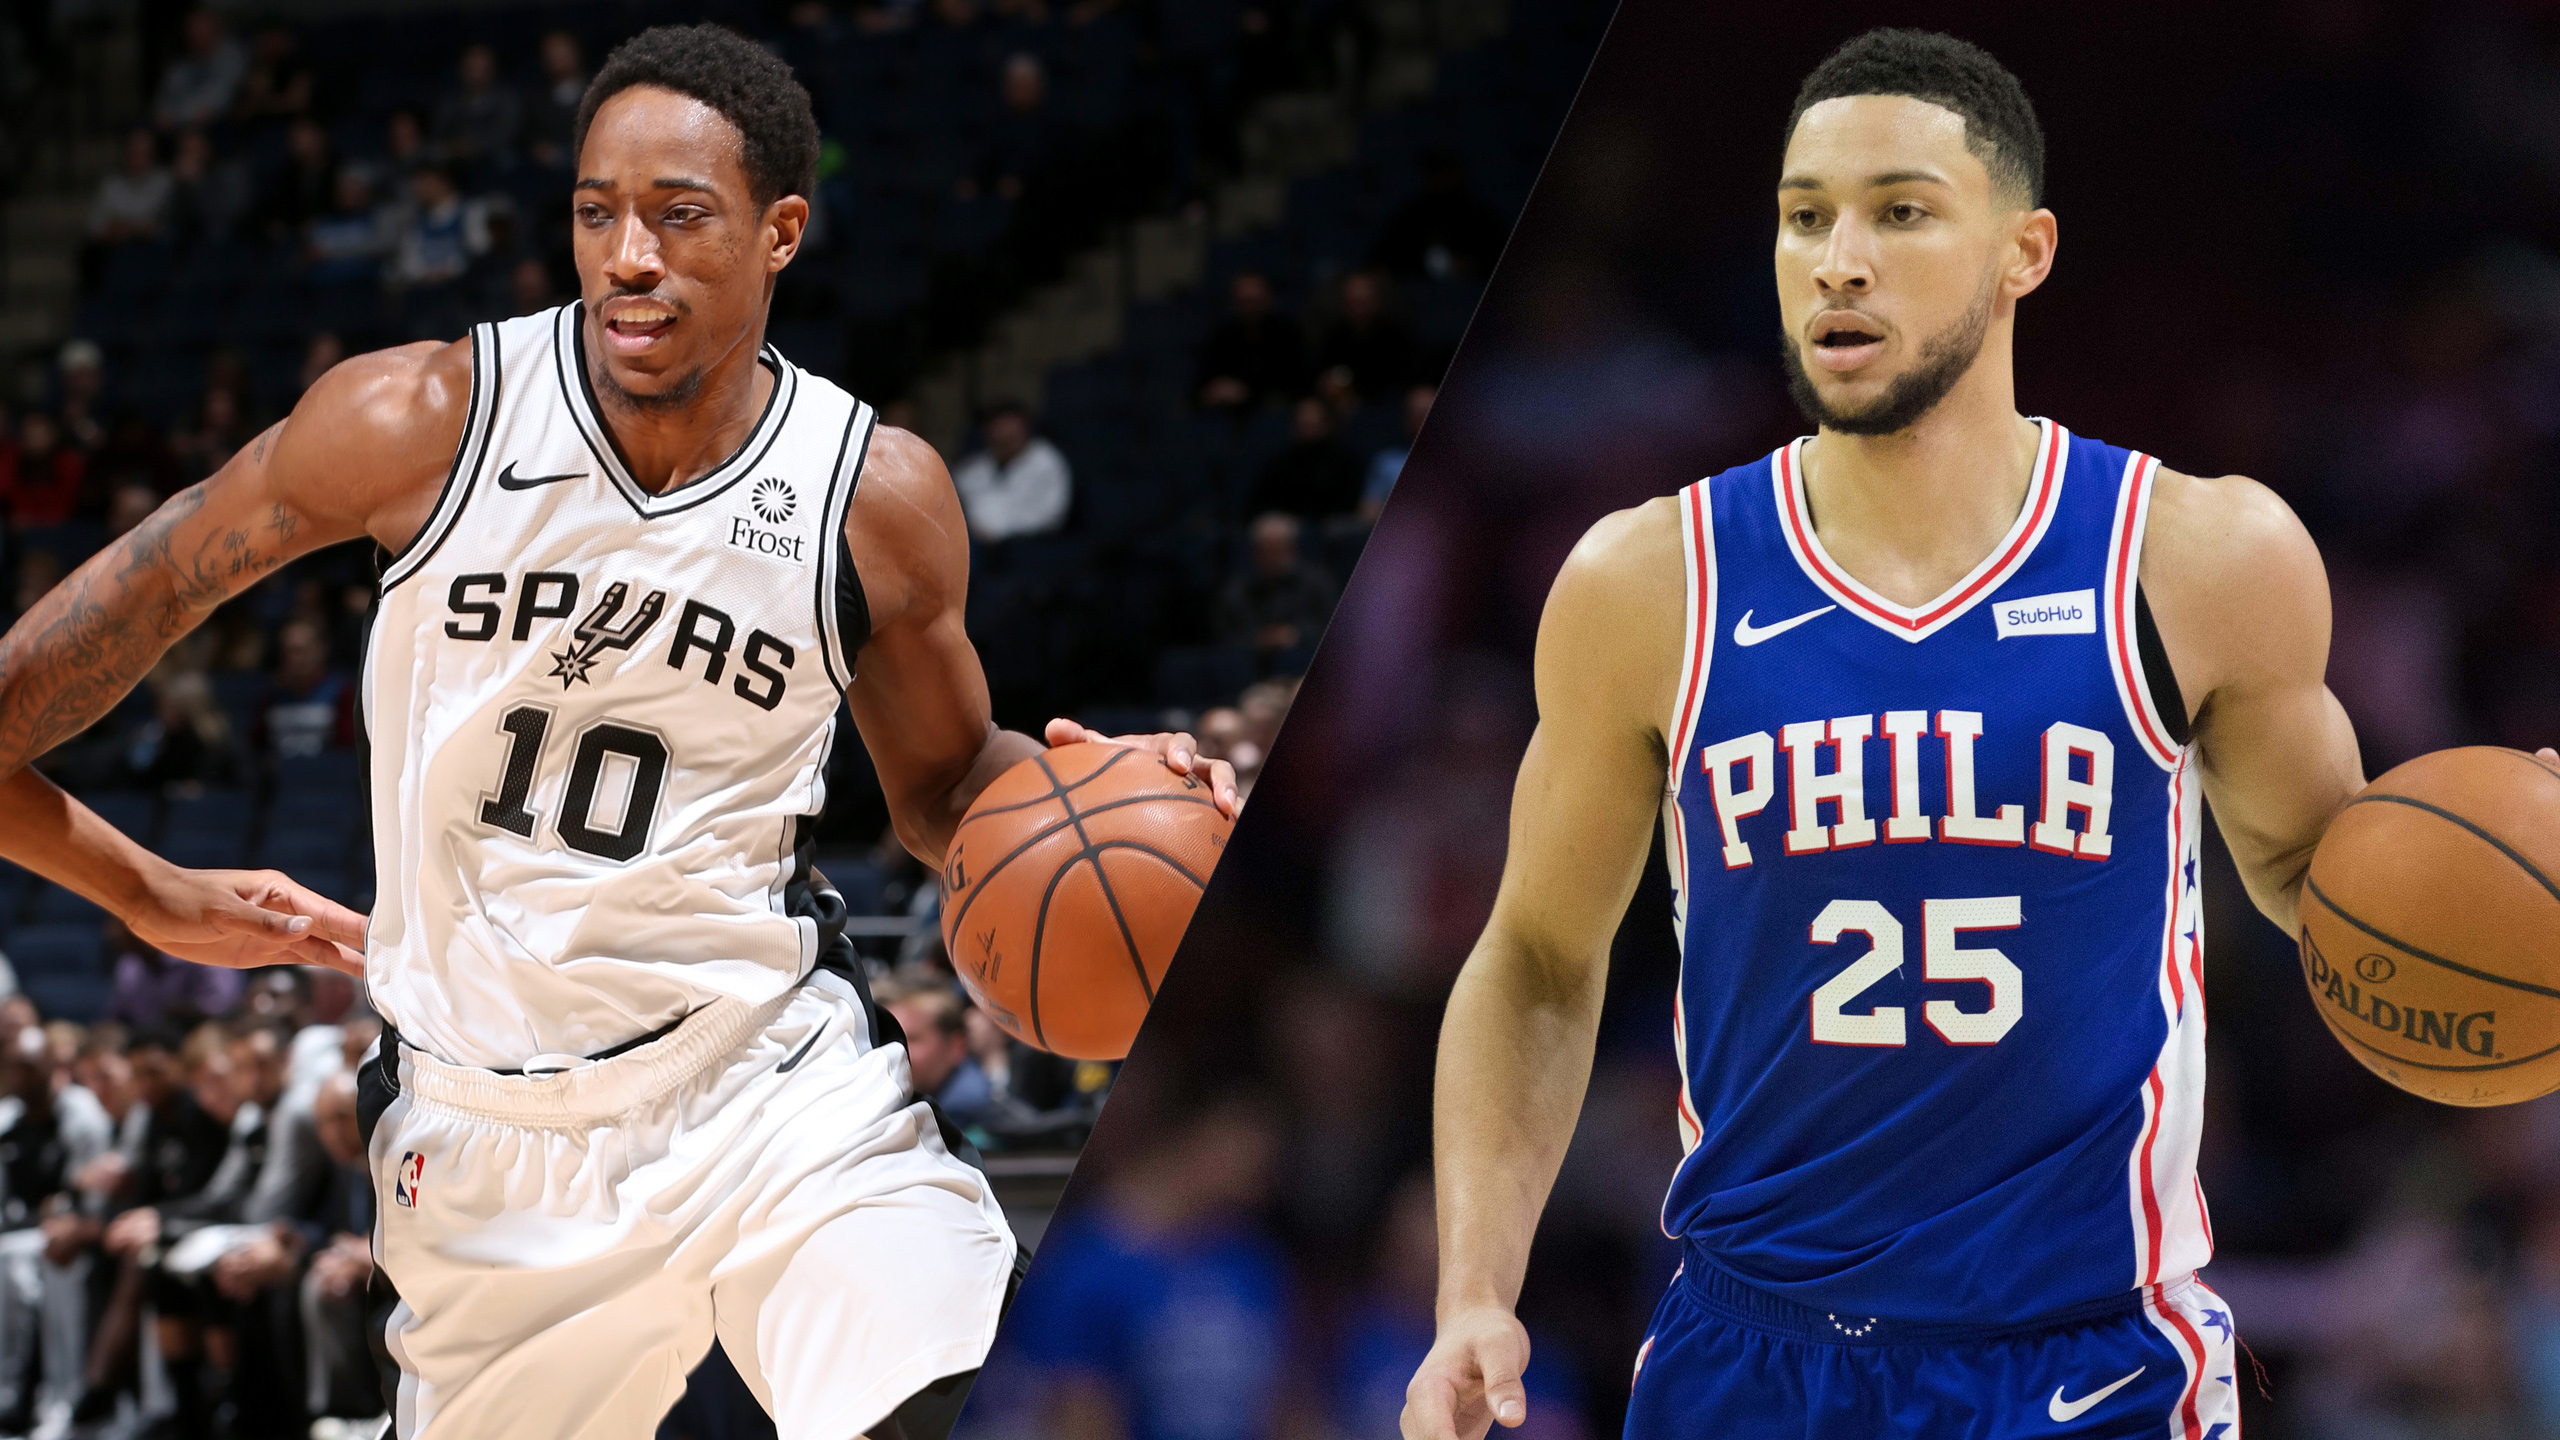 San Antonio Spurs vs. Philadelphia 76ers (re-air)